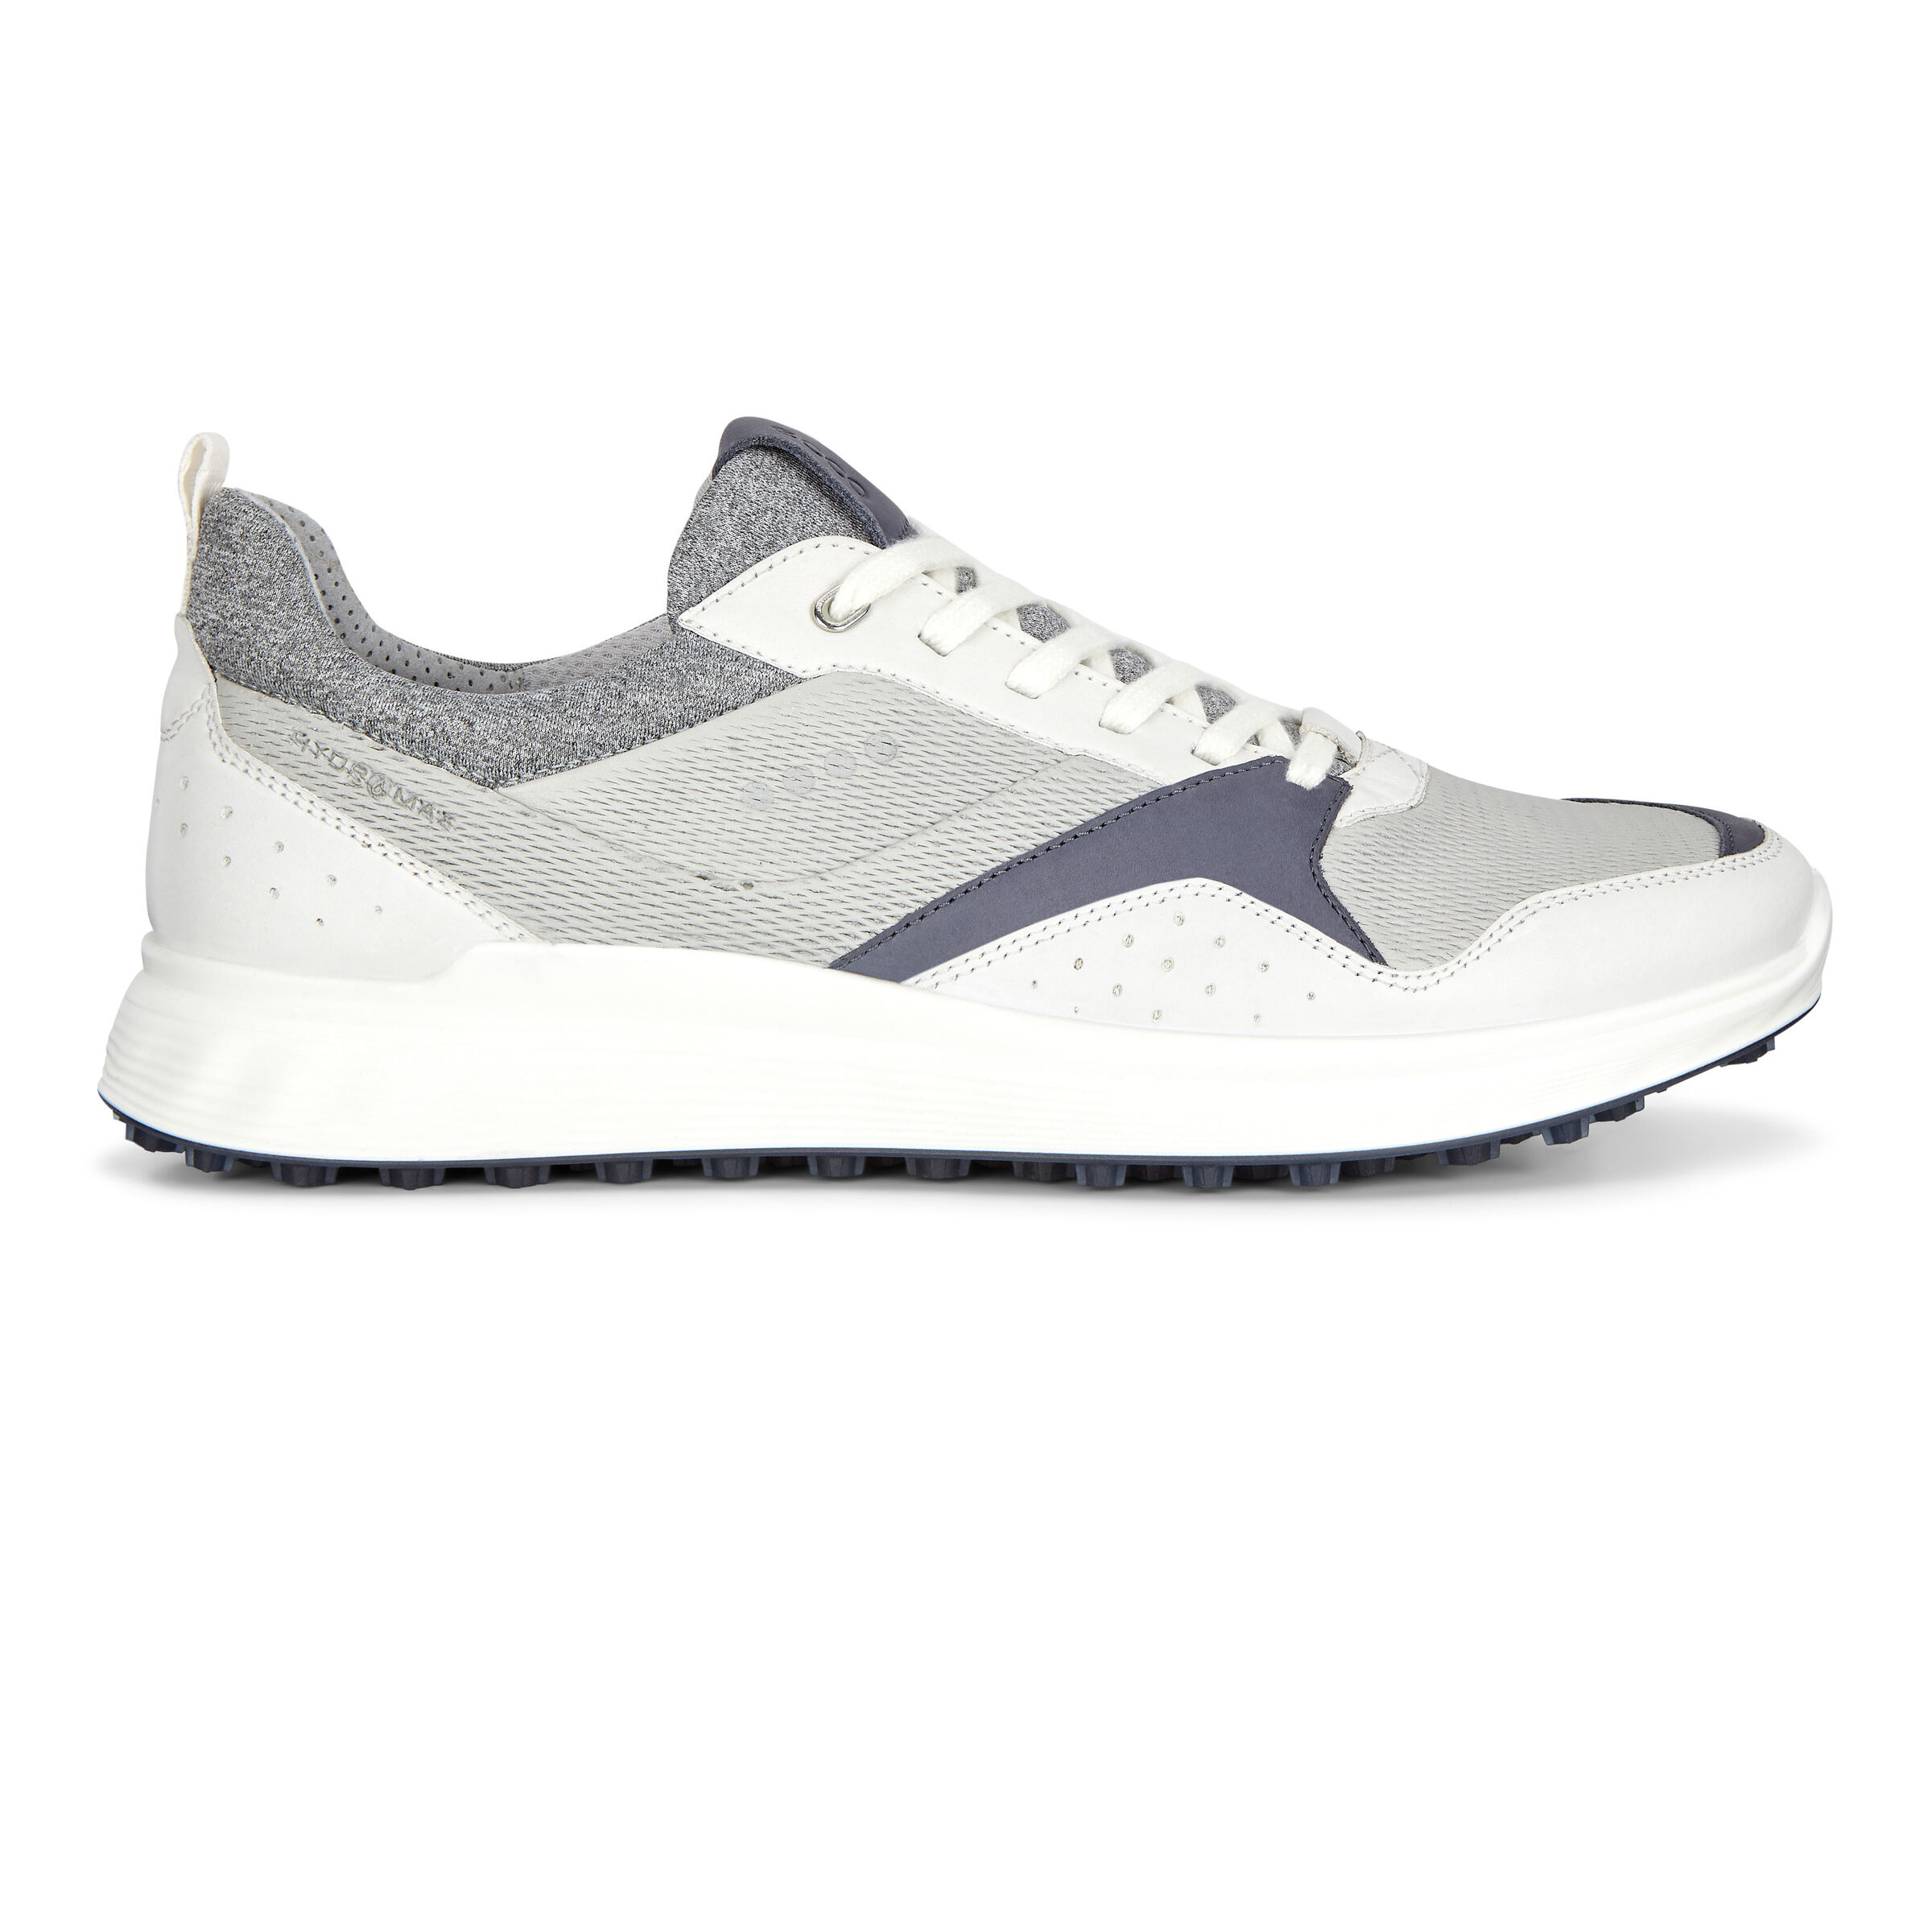 ECCO Mens Spikeless S-casual Golf Shoes